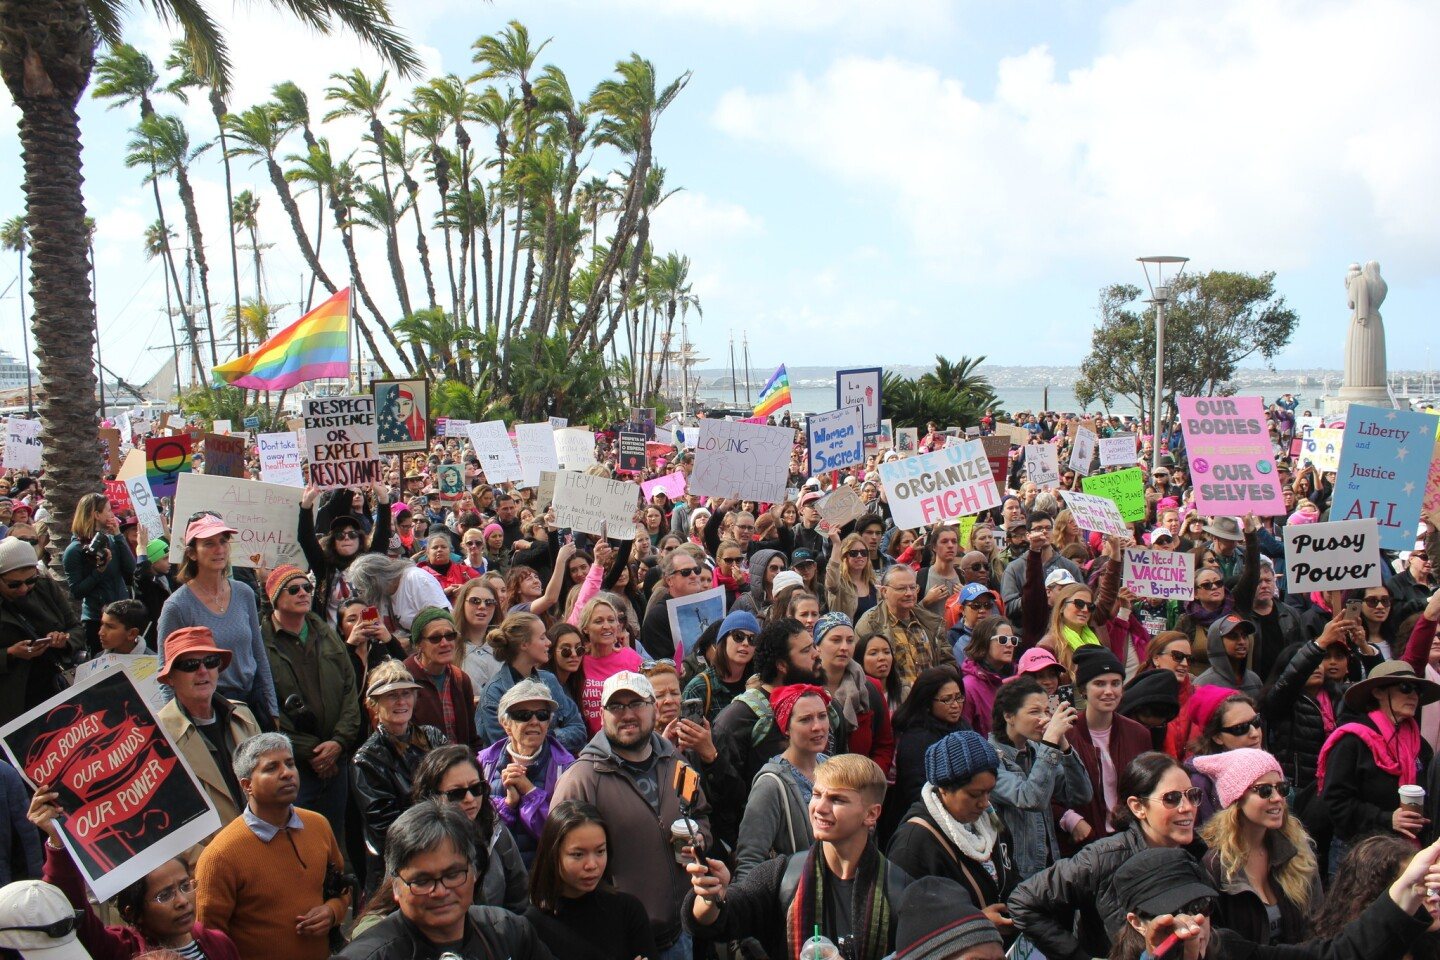 Protestors reach the San Diego County Administration Building entrance at Waterfront Park, which marked the end of the San Diego Women's March.